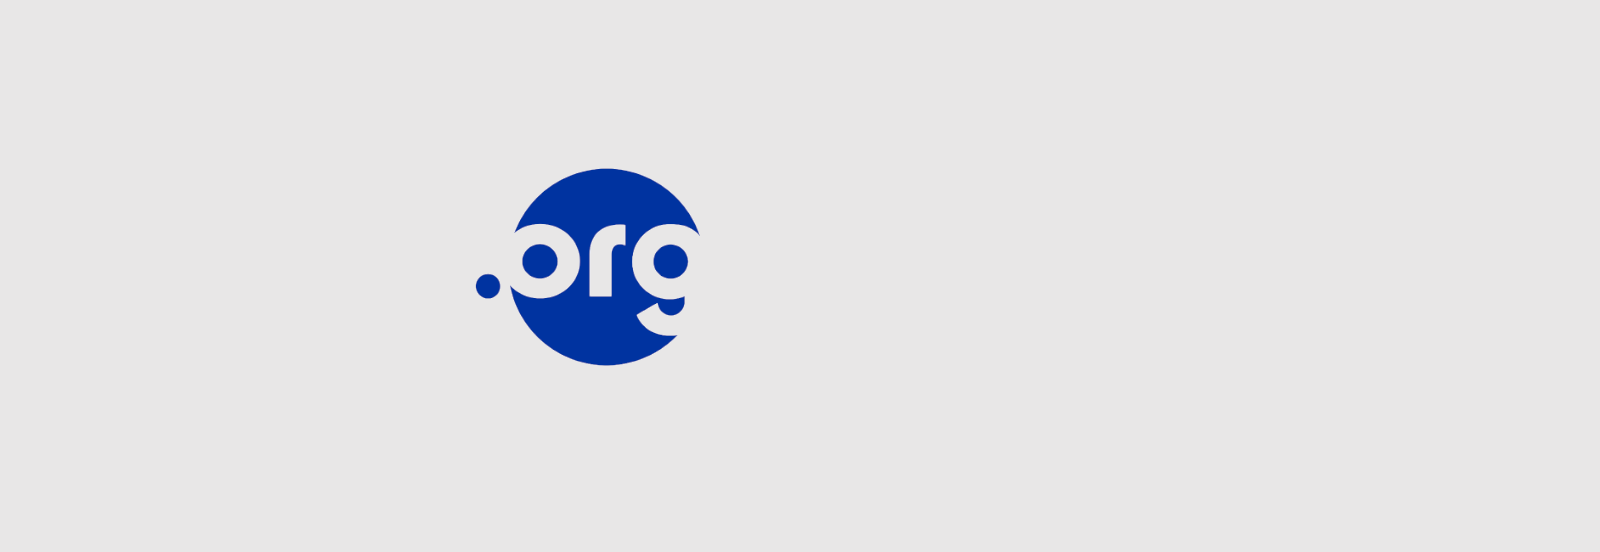 .org logo on a gray background